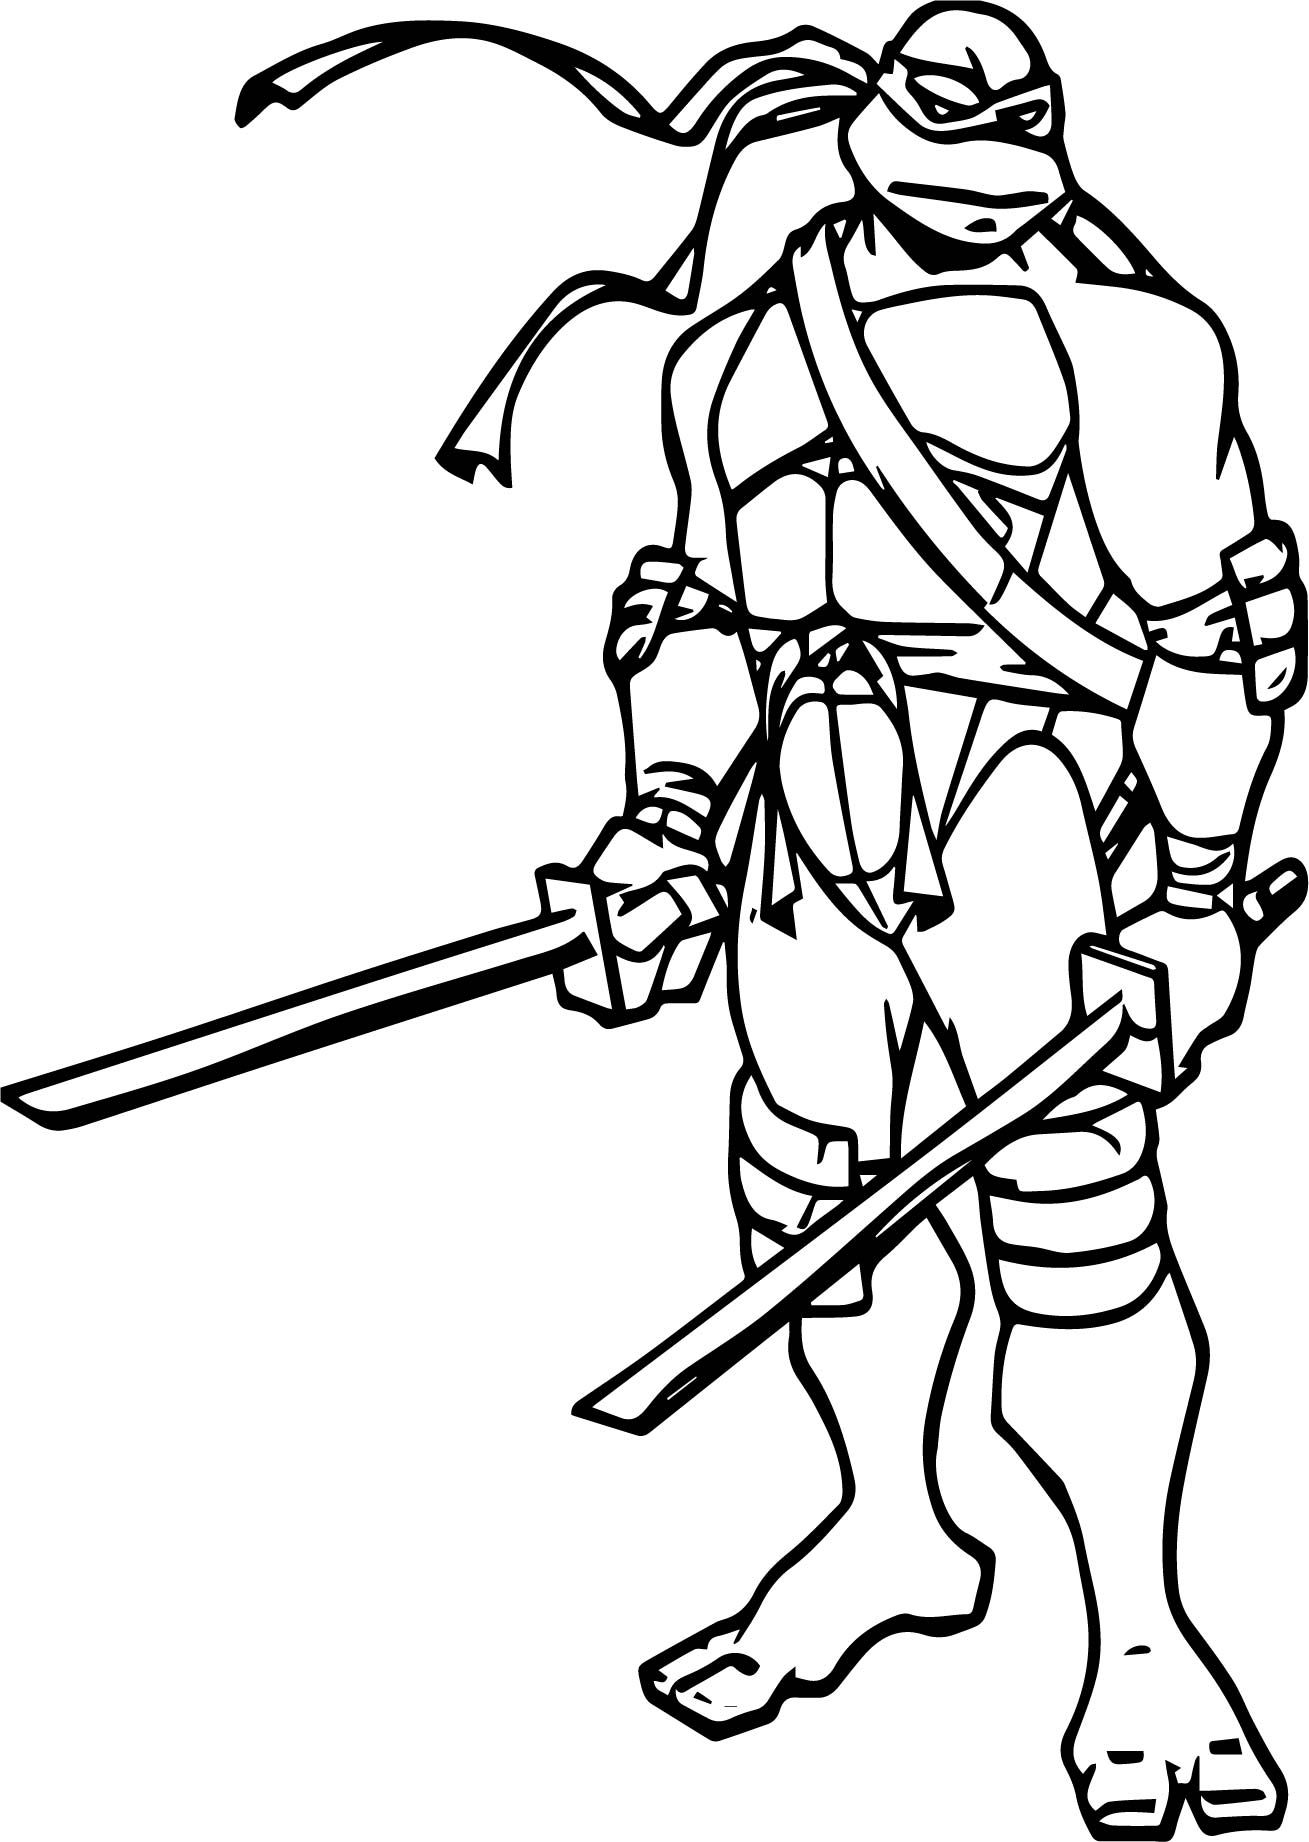 Ninja Turtle Two Blade Leonardo Coloring Page Wecoloringpage Turtle Coloring Pages Ninja Turtle Coloring Pages Leonardo Ninja Turtle